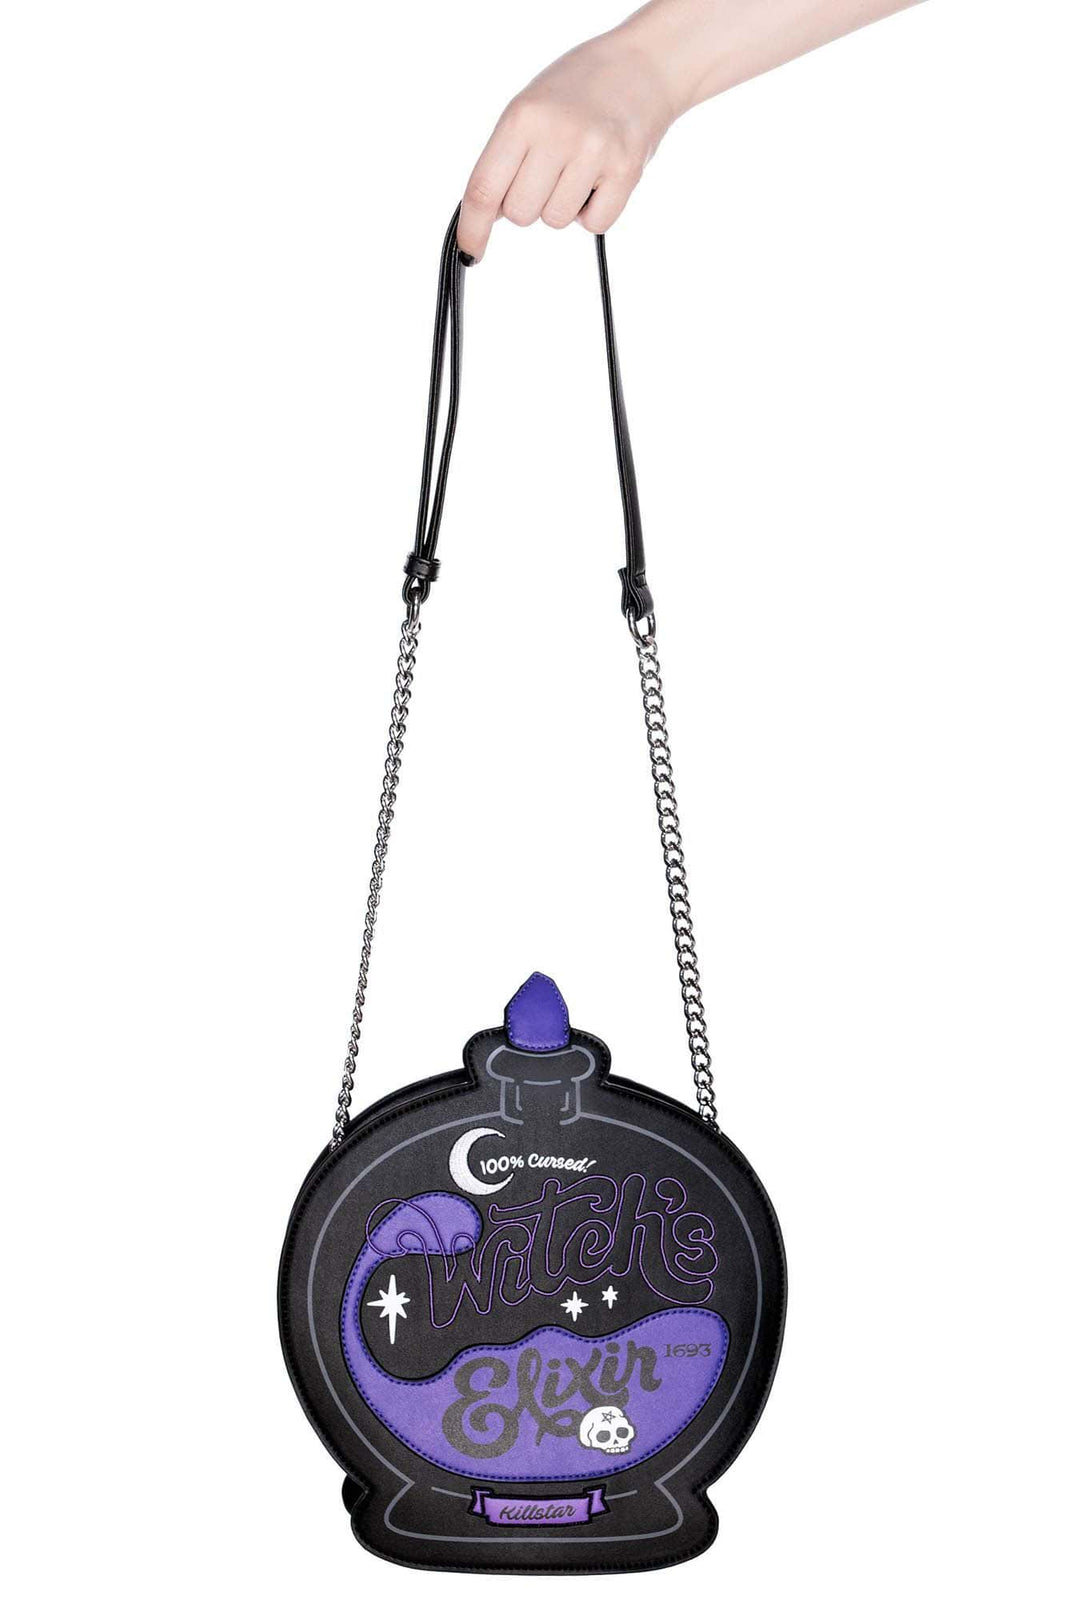 Witch's Elixir Handbag